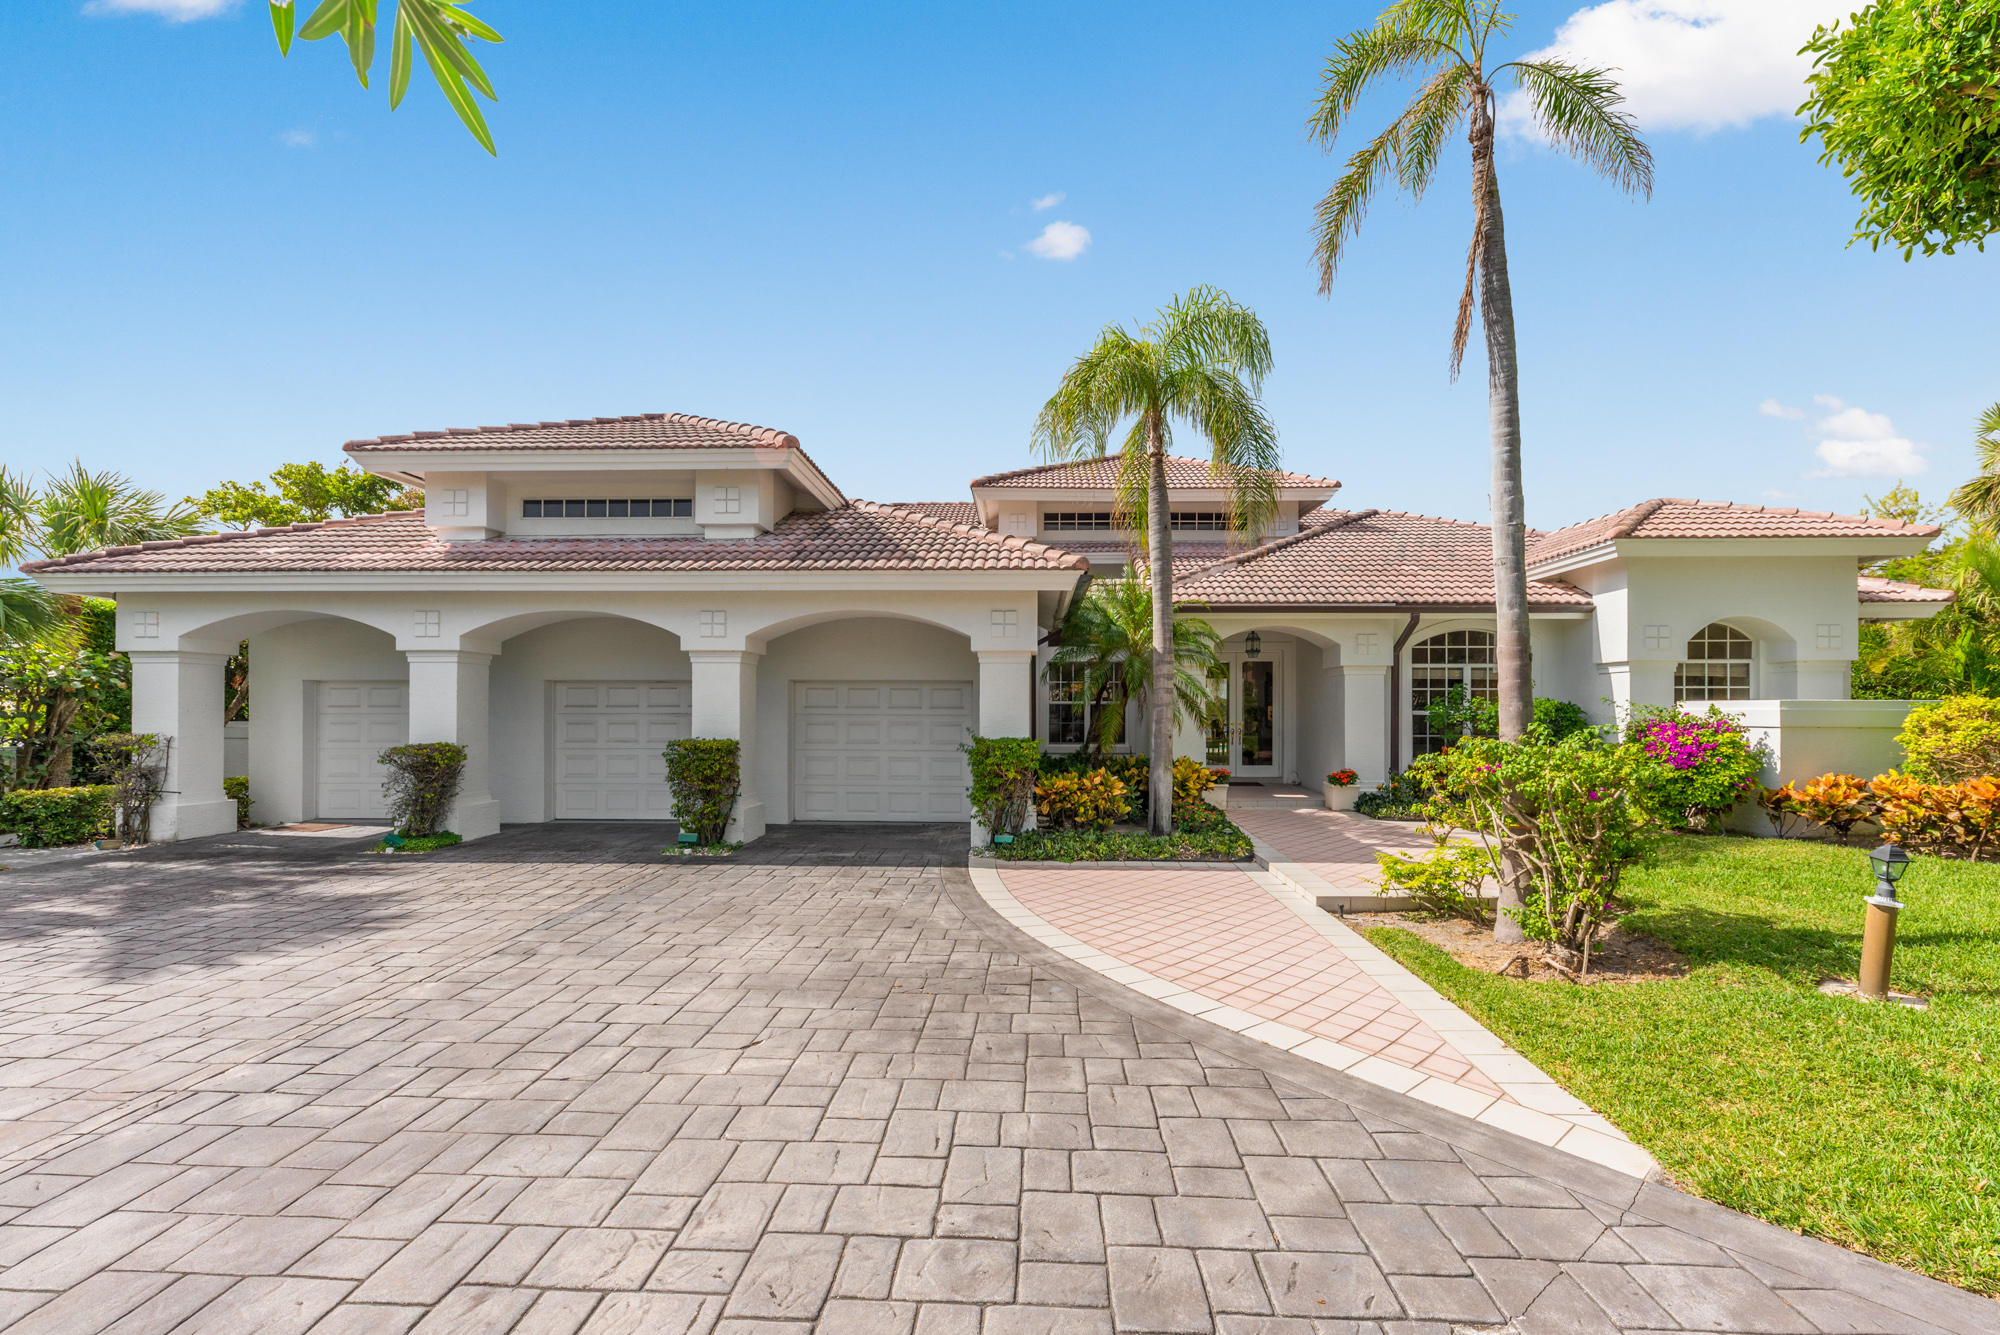 89 Lighthouse Drive, Jupiter, Florida 33469, 4 Bedrooms Bedrooms, ,4.1 BathroomsBathrooms,Single Family,For Rent,Jupiter Inlet Beach Colony,Lighthouse,1,RX-10493681